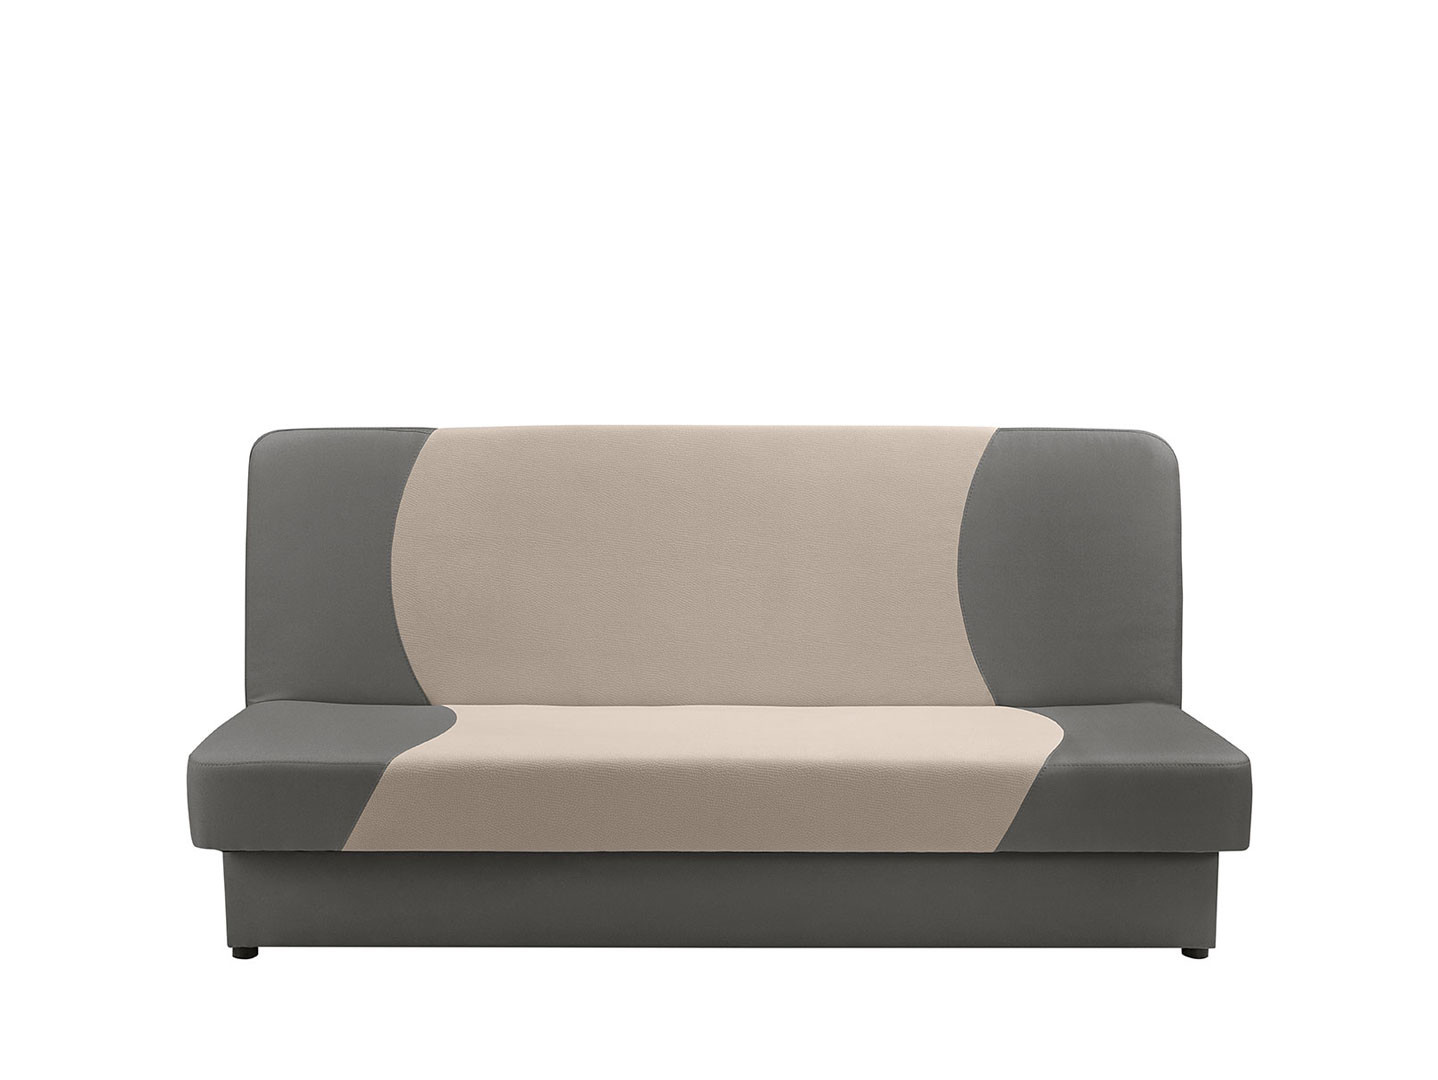 Sofa beds hop 3k 190cm x 93cm x 90cm furniture store brw for Sofa bed 90x200